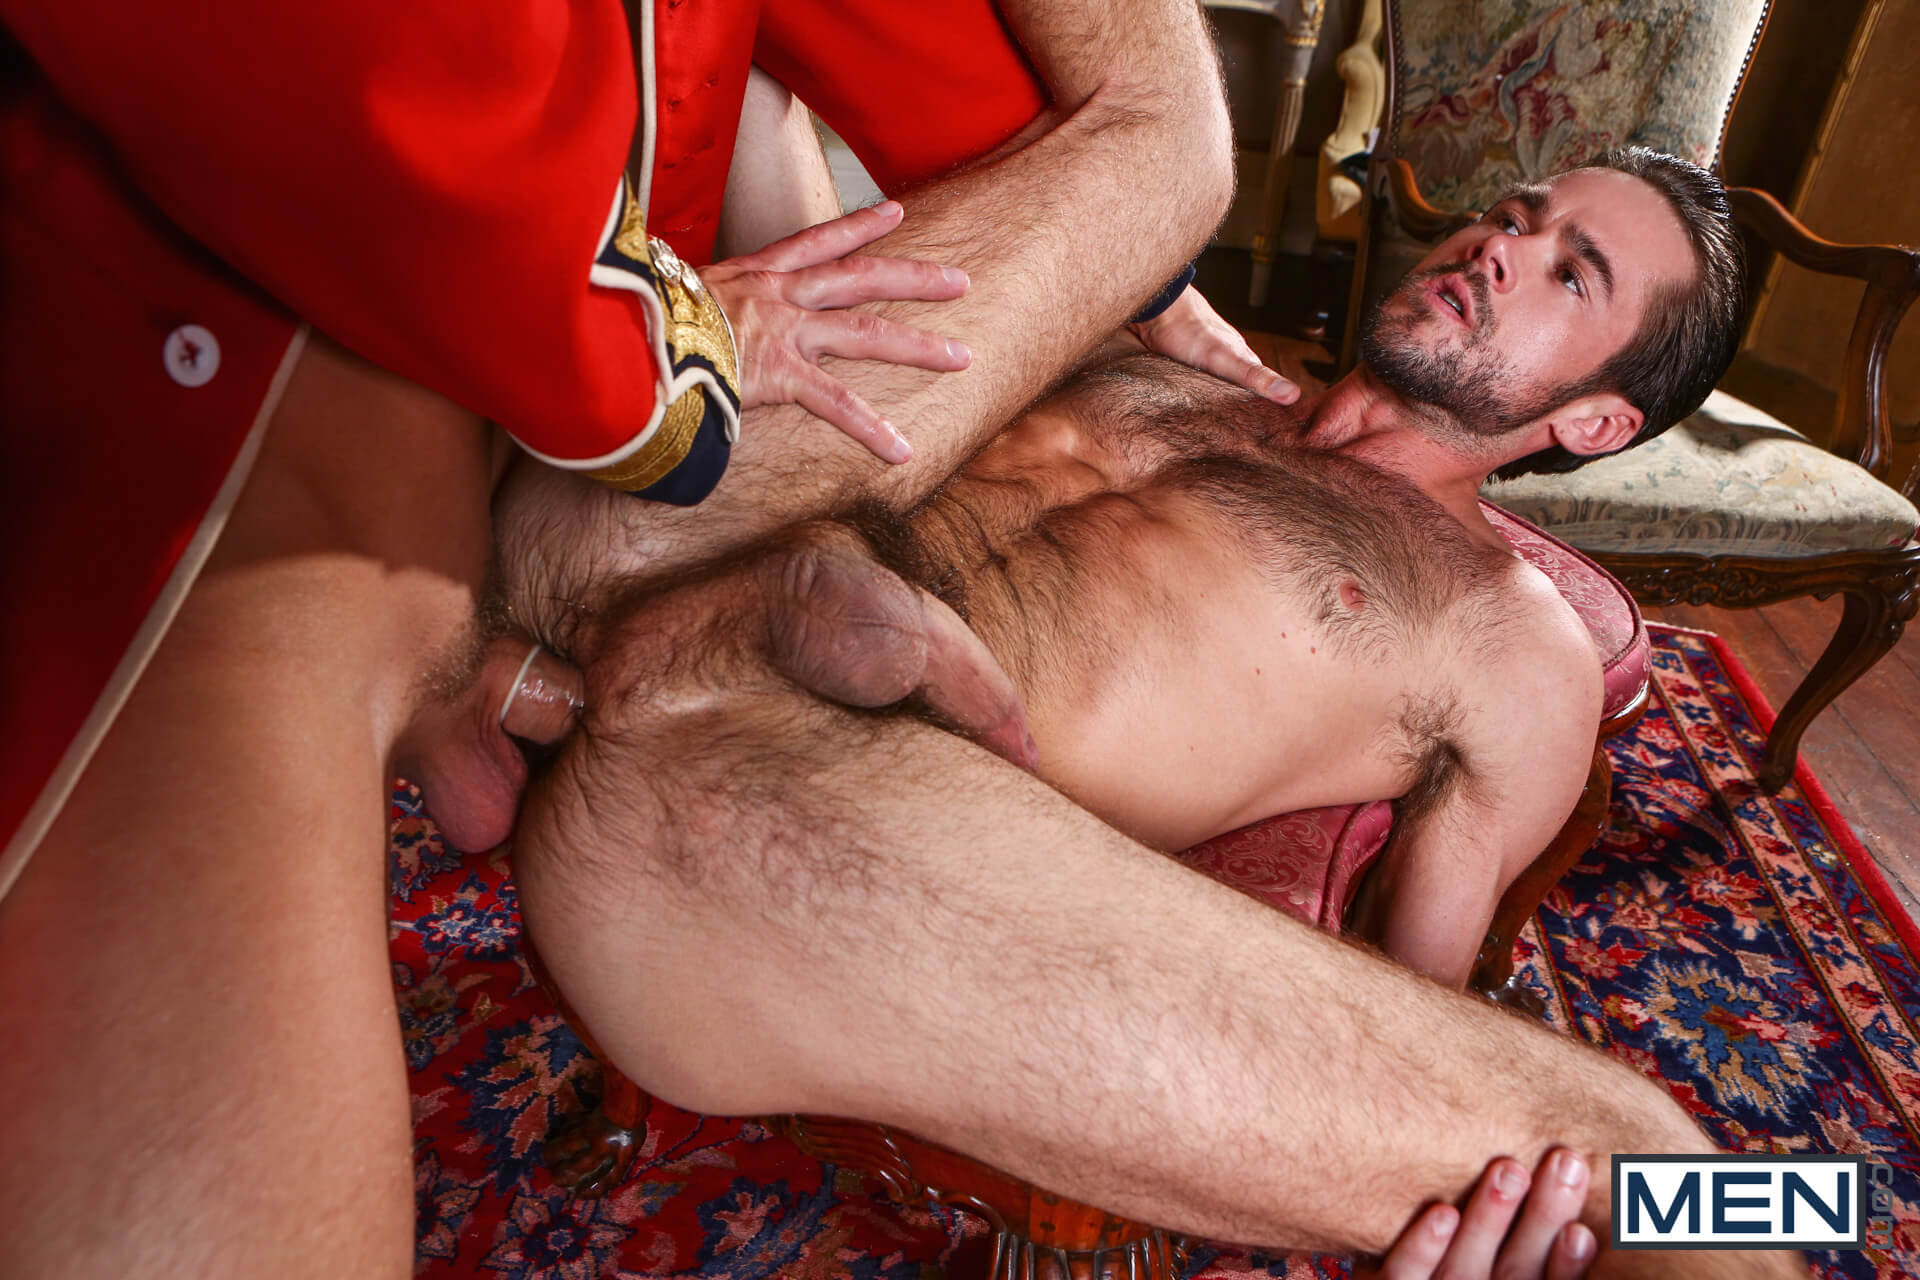 men men of uk a royal fuckfest part 2 mike de marko paul walker gay porn blog image 18